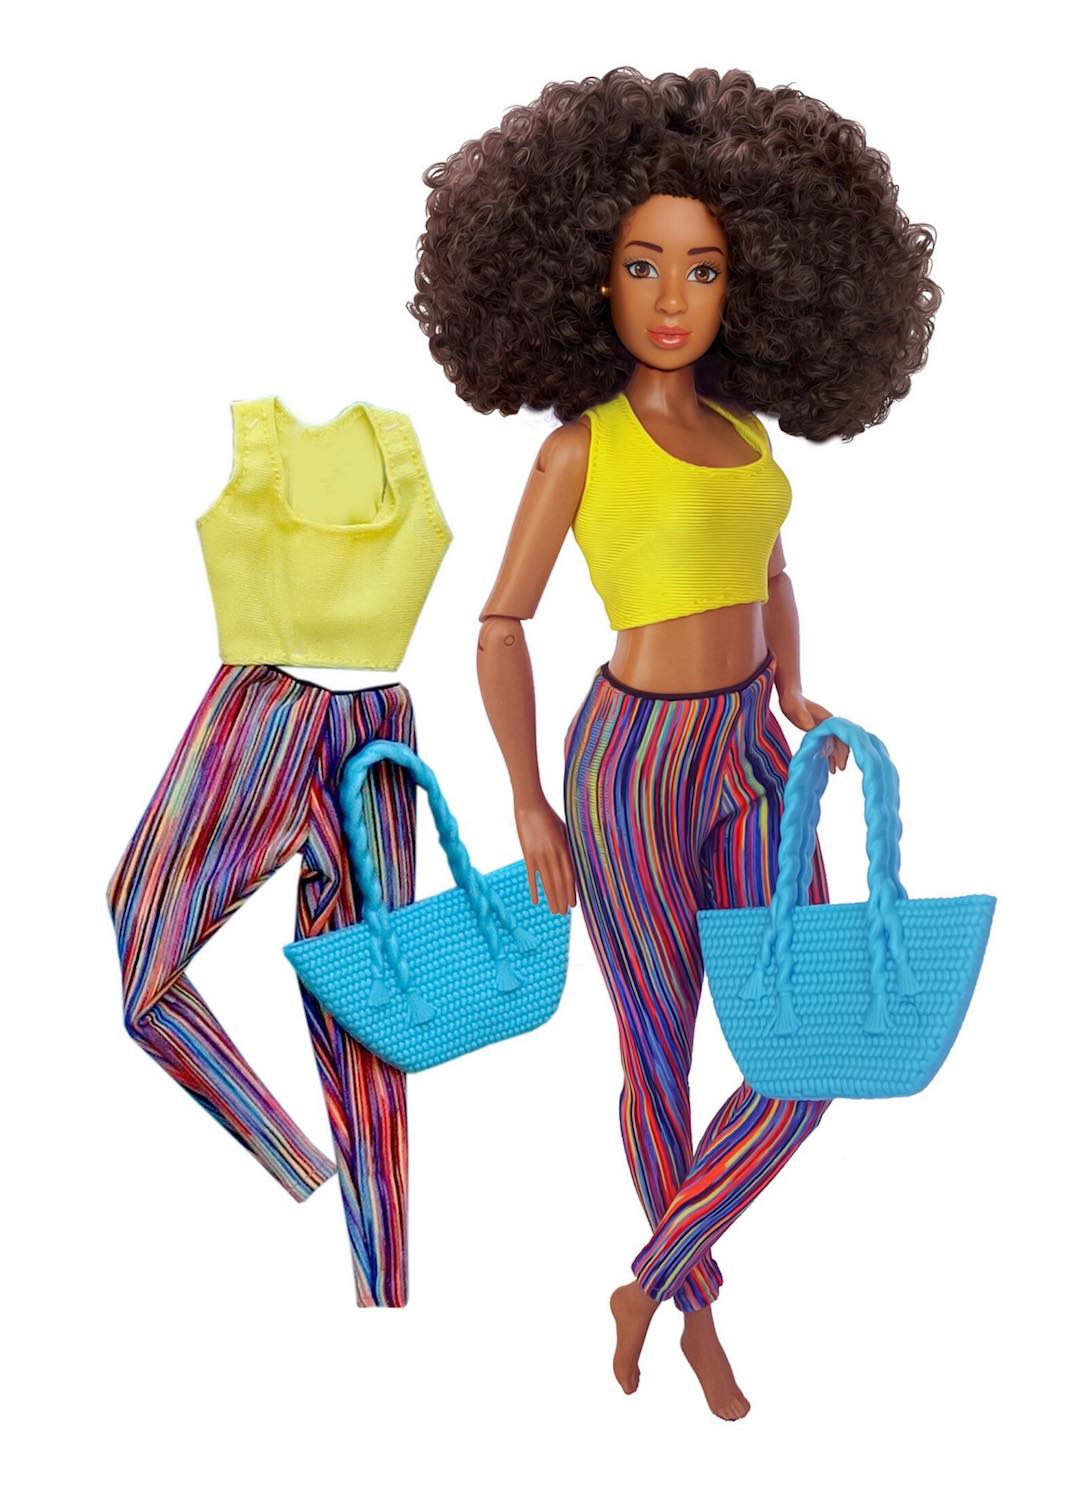 black fashion doll workout doll clothes fitness yoga pants